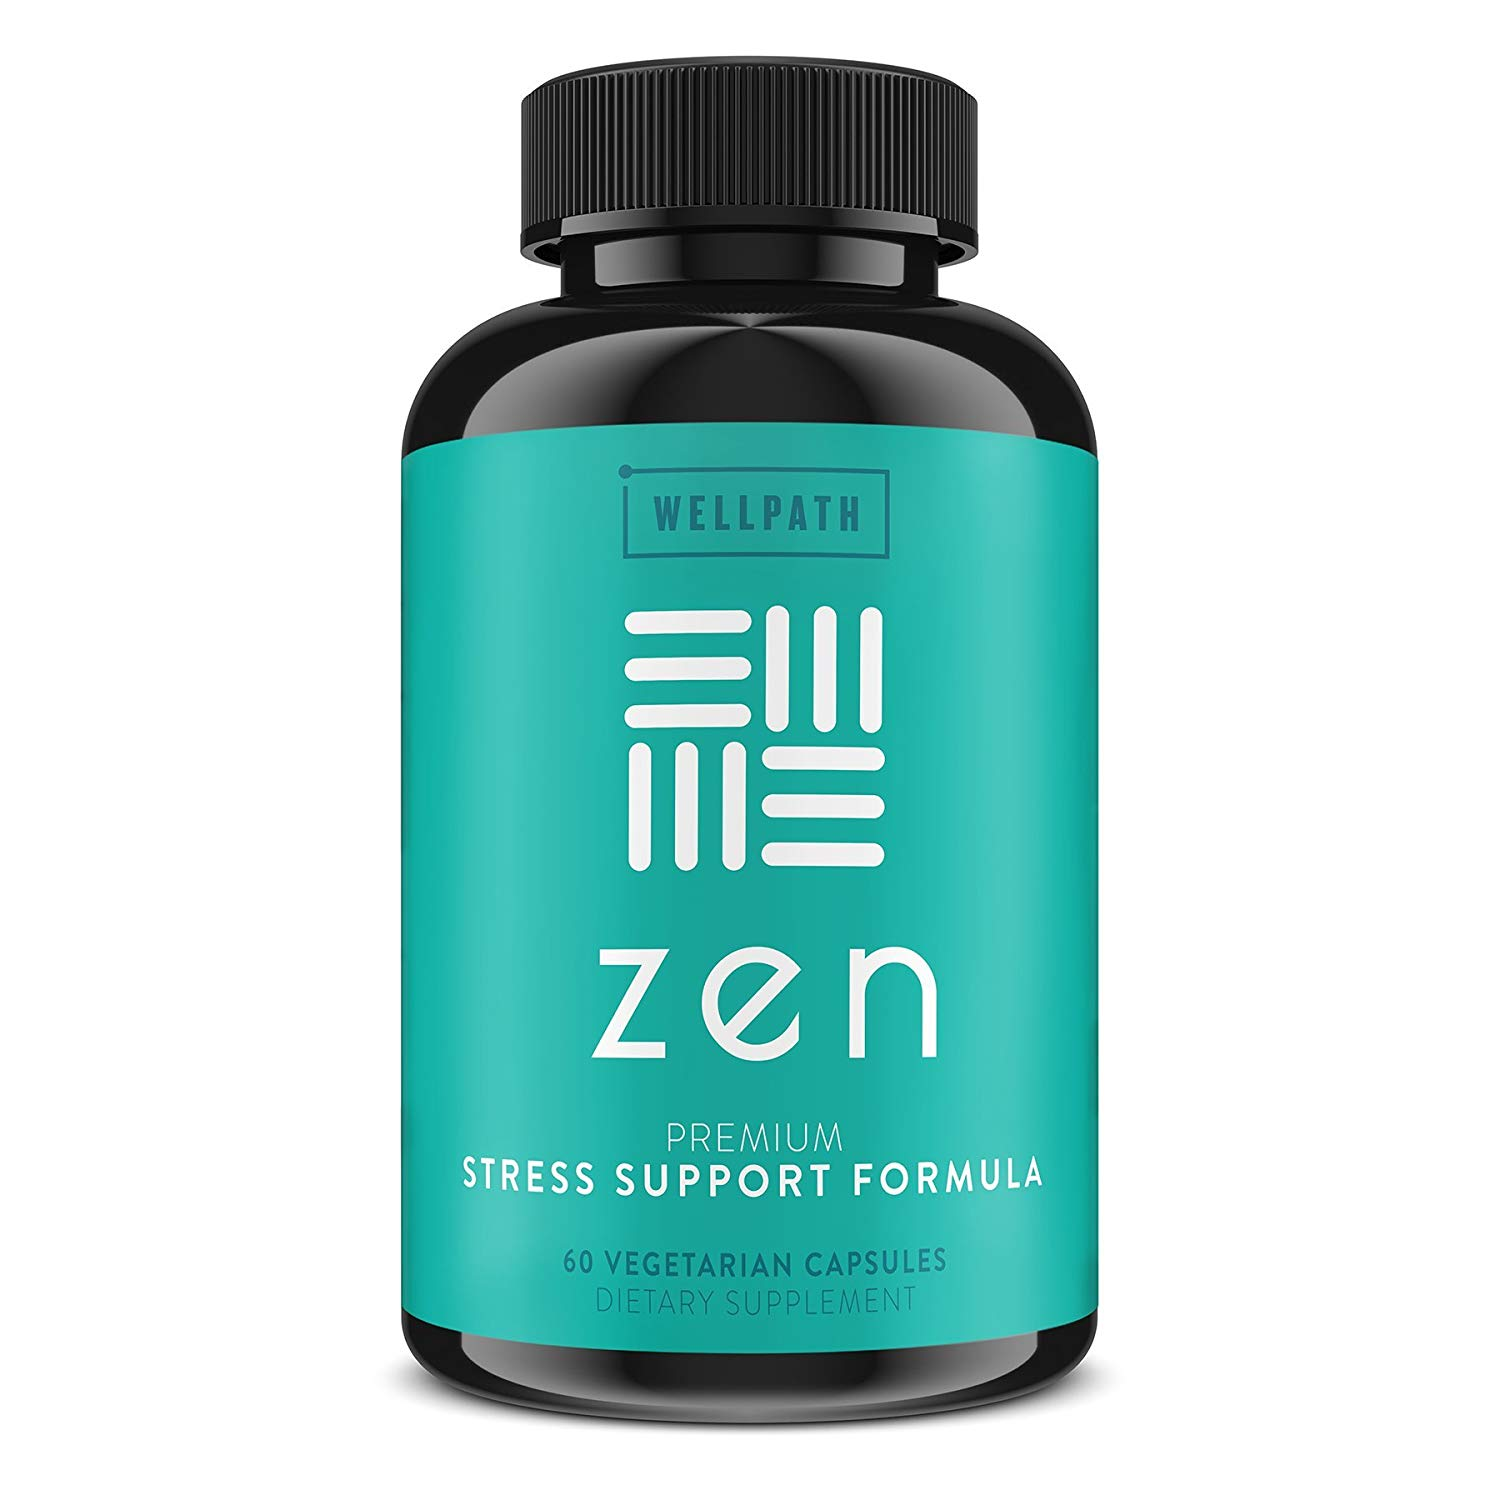 Review of Zen Premium Anxiety and Stress Relief Supplement - Natural Herbal Formula Developed to Promote Calm, Positive Mood - with Ashwagandha, L-Theanine, Rhodiola Rosea, Hawthorne - 60 Veg. Capsules